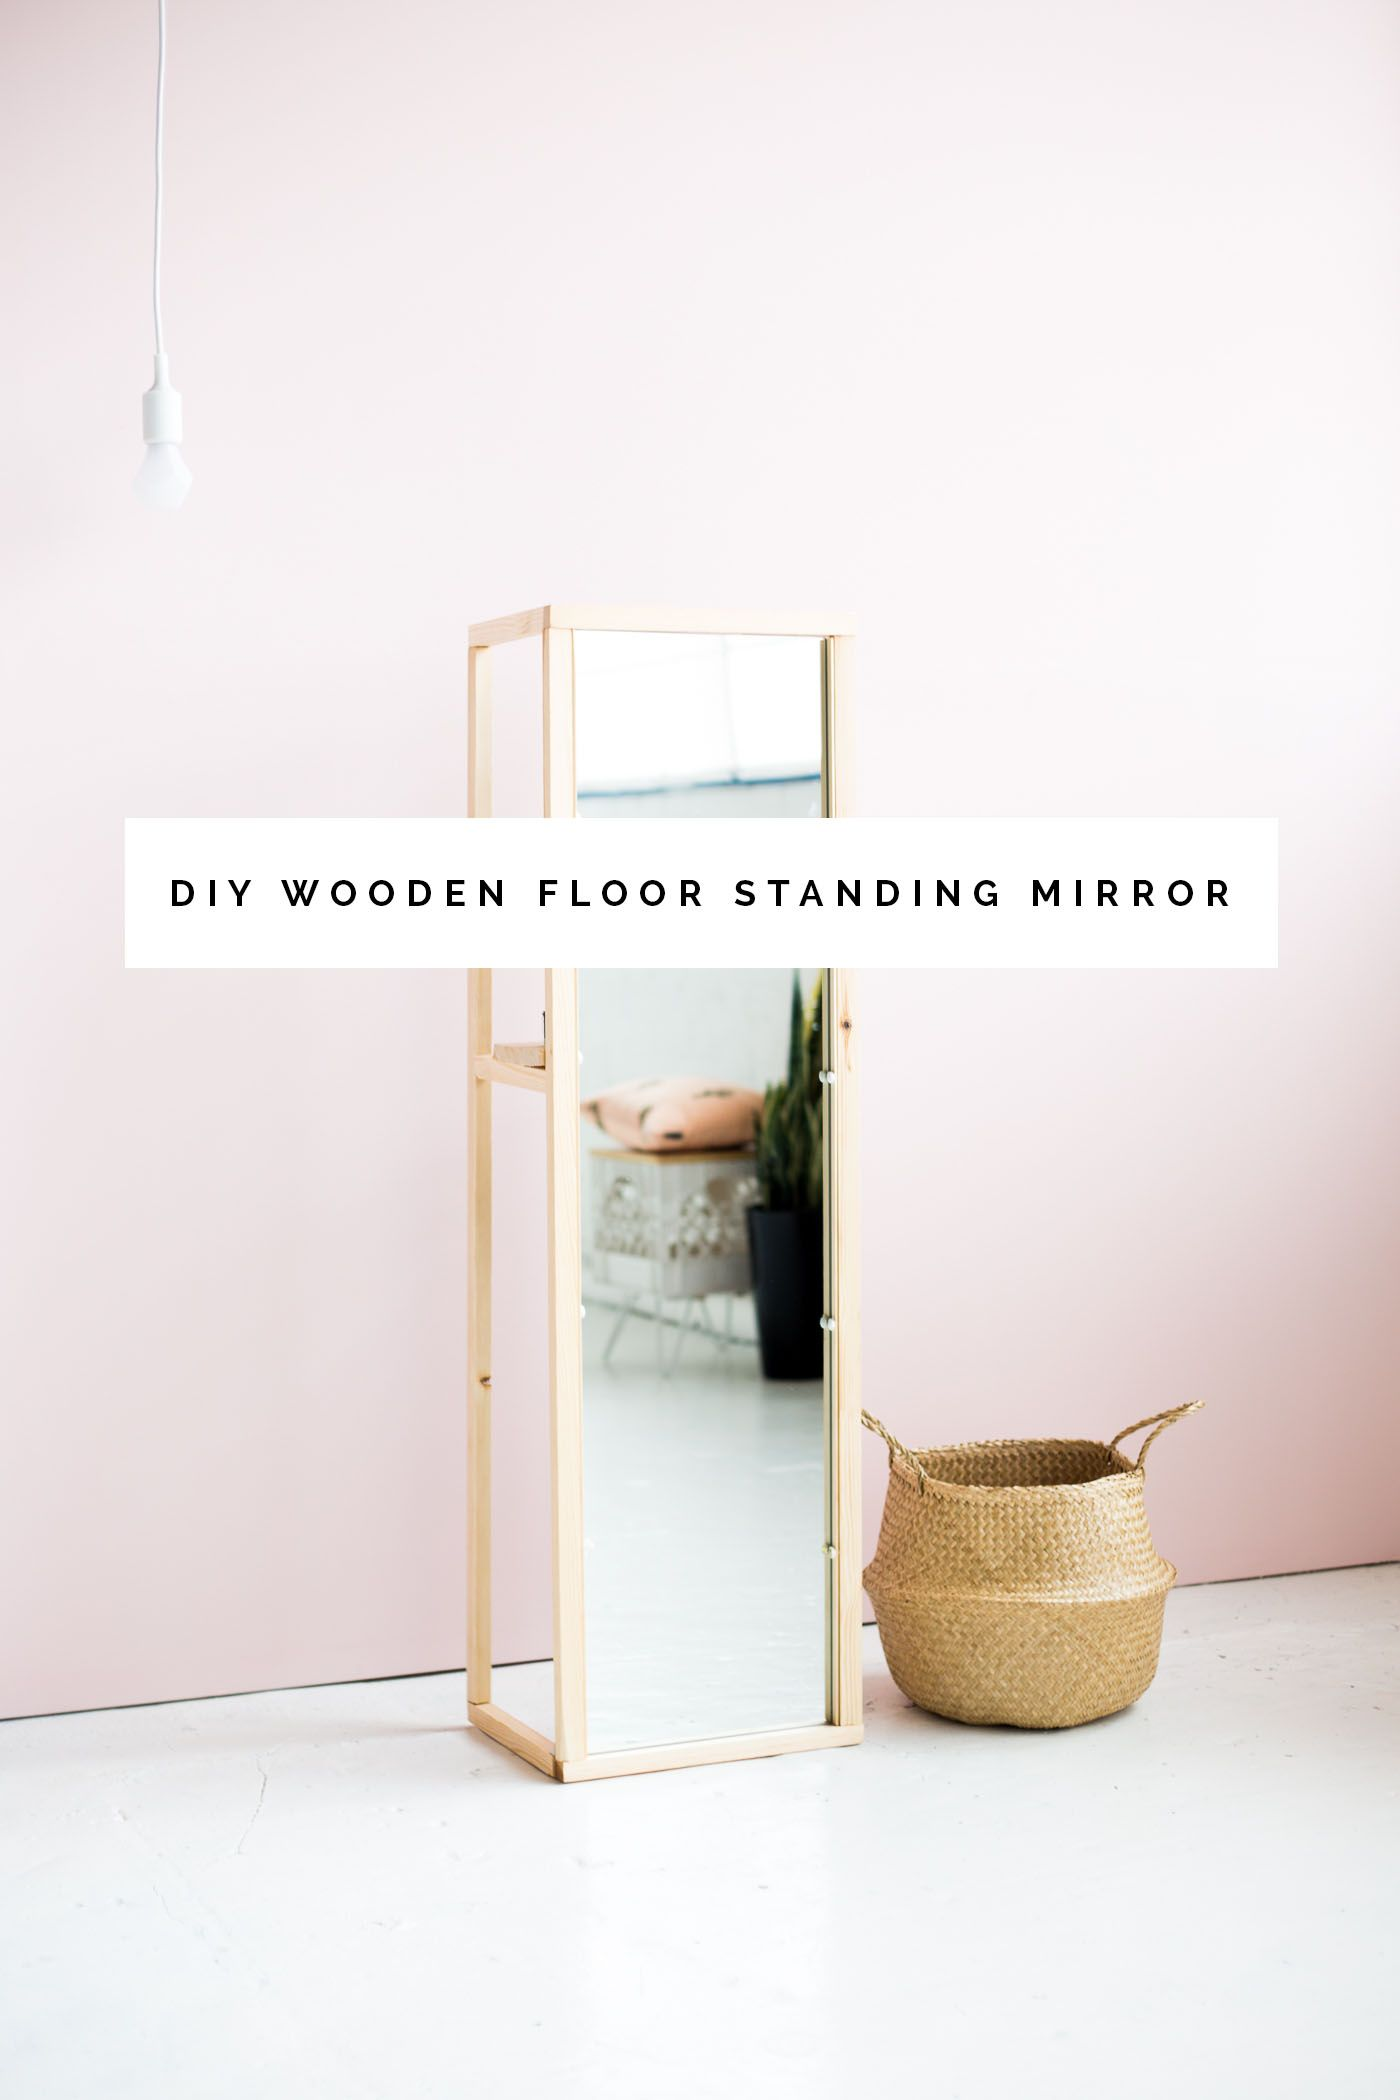 DIY Wooden Floor Standing Mirror Tutorial